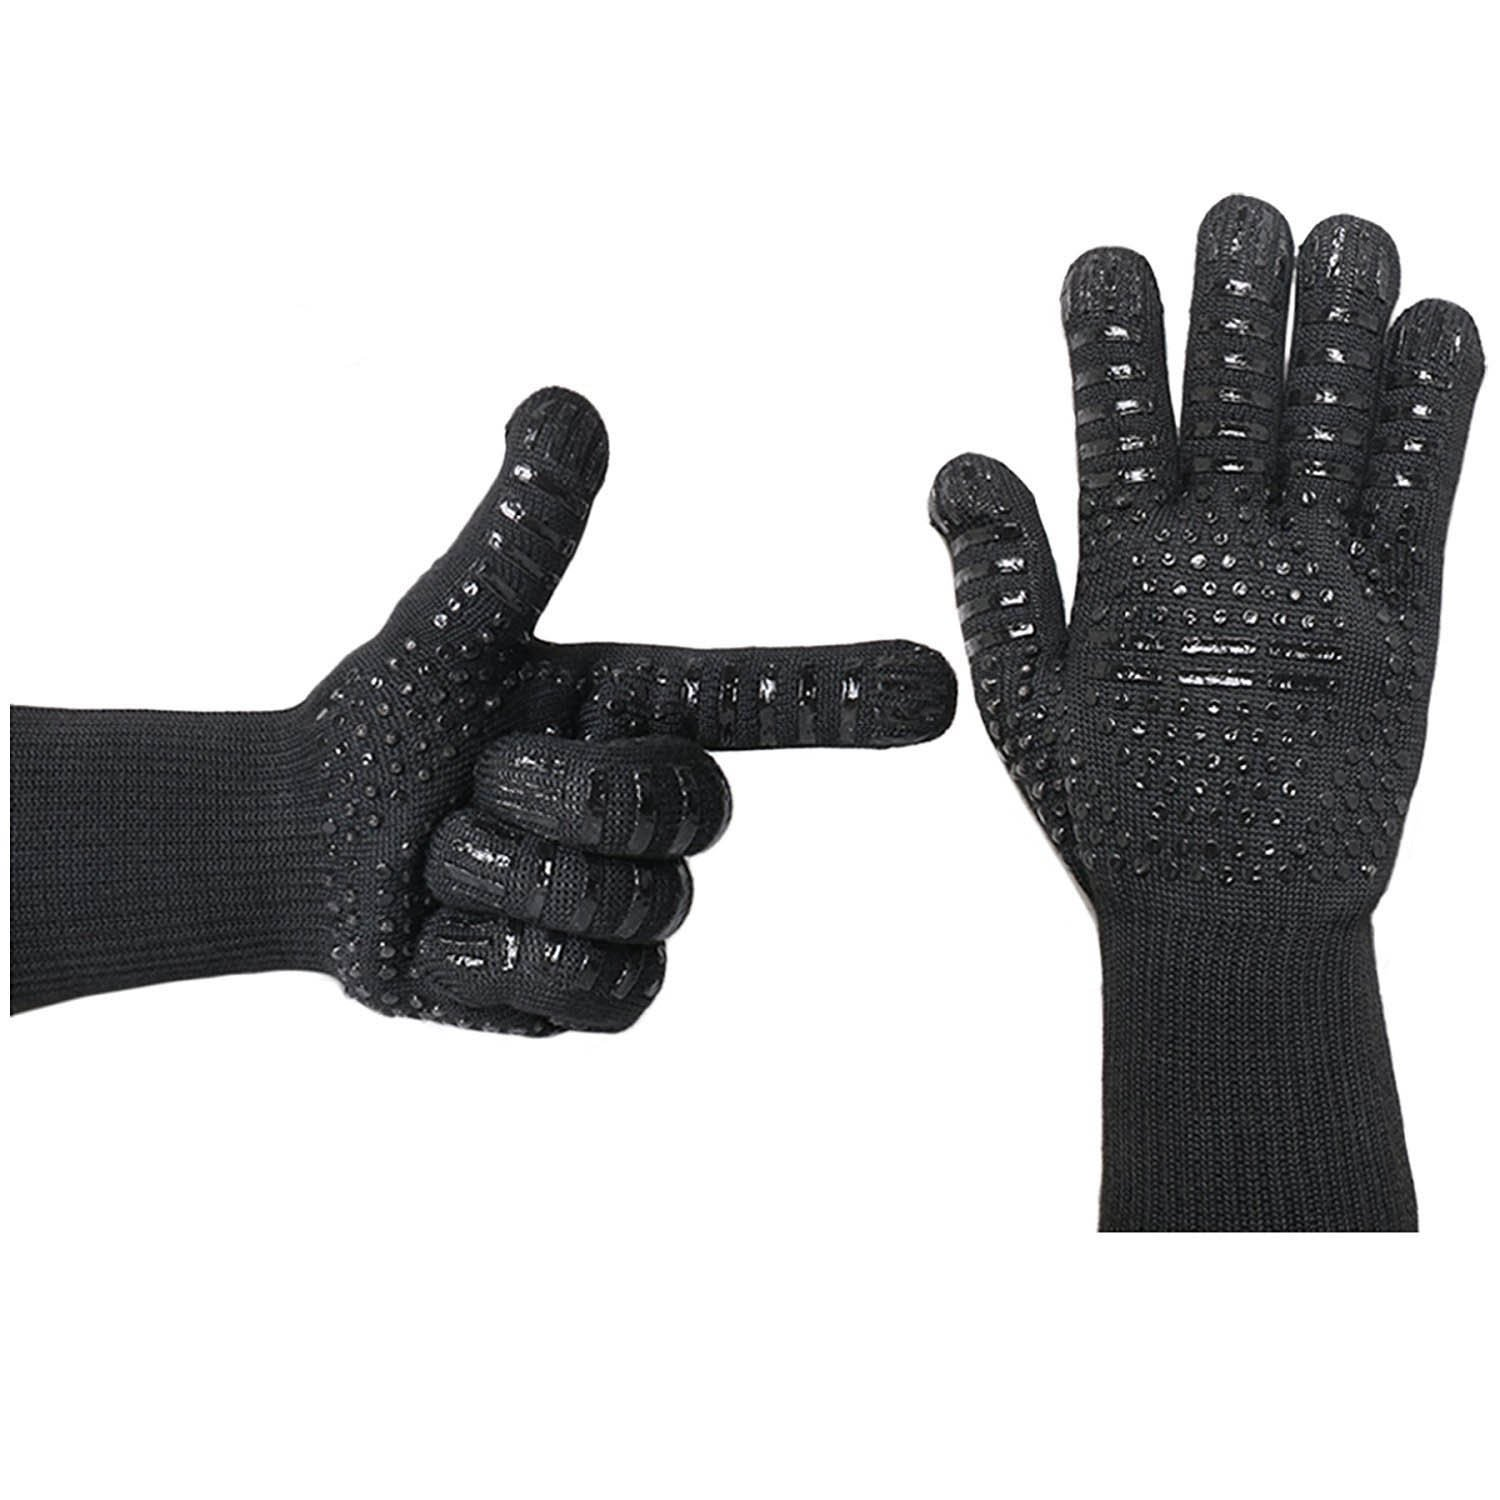 Feezzy BBQ Gloves 932°F Extreme Heat Resistant Oven Gloves For Cooking, Grilling, Baking - Extra Long Cuff(Black)